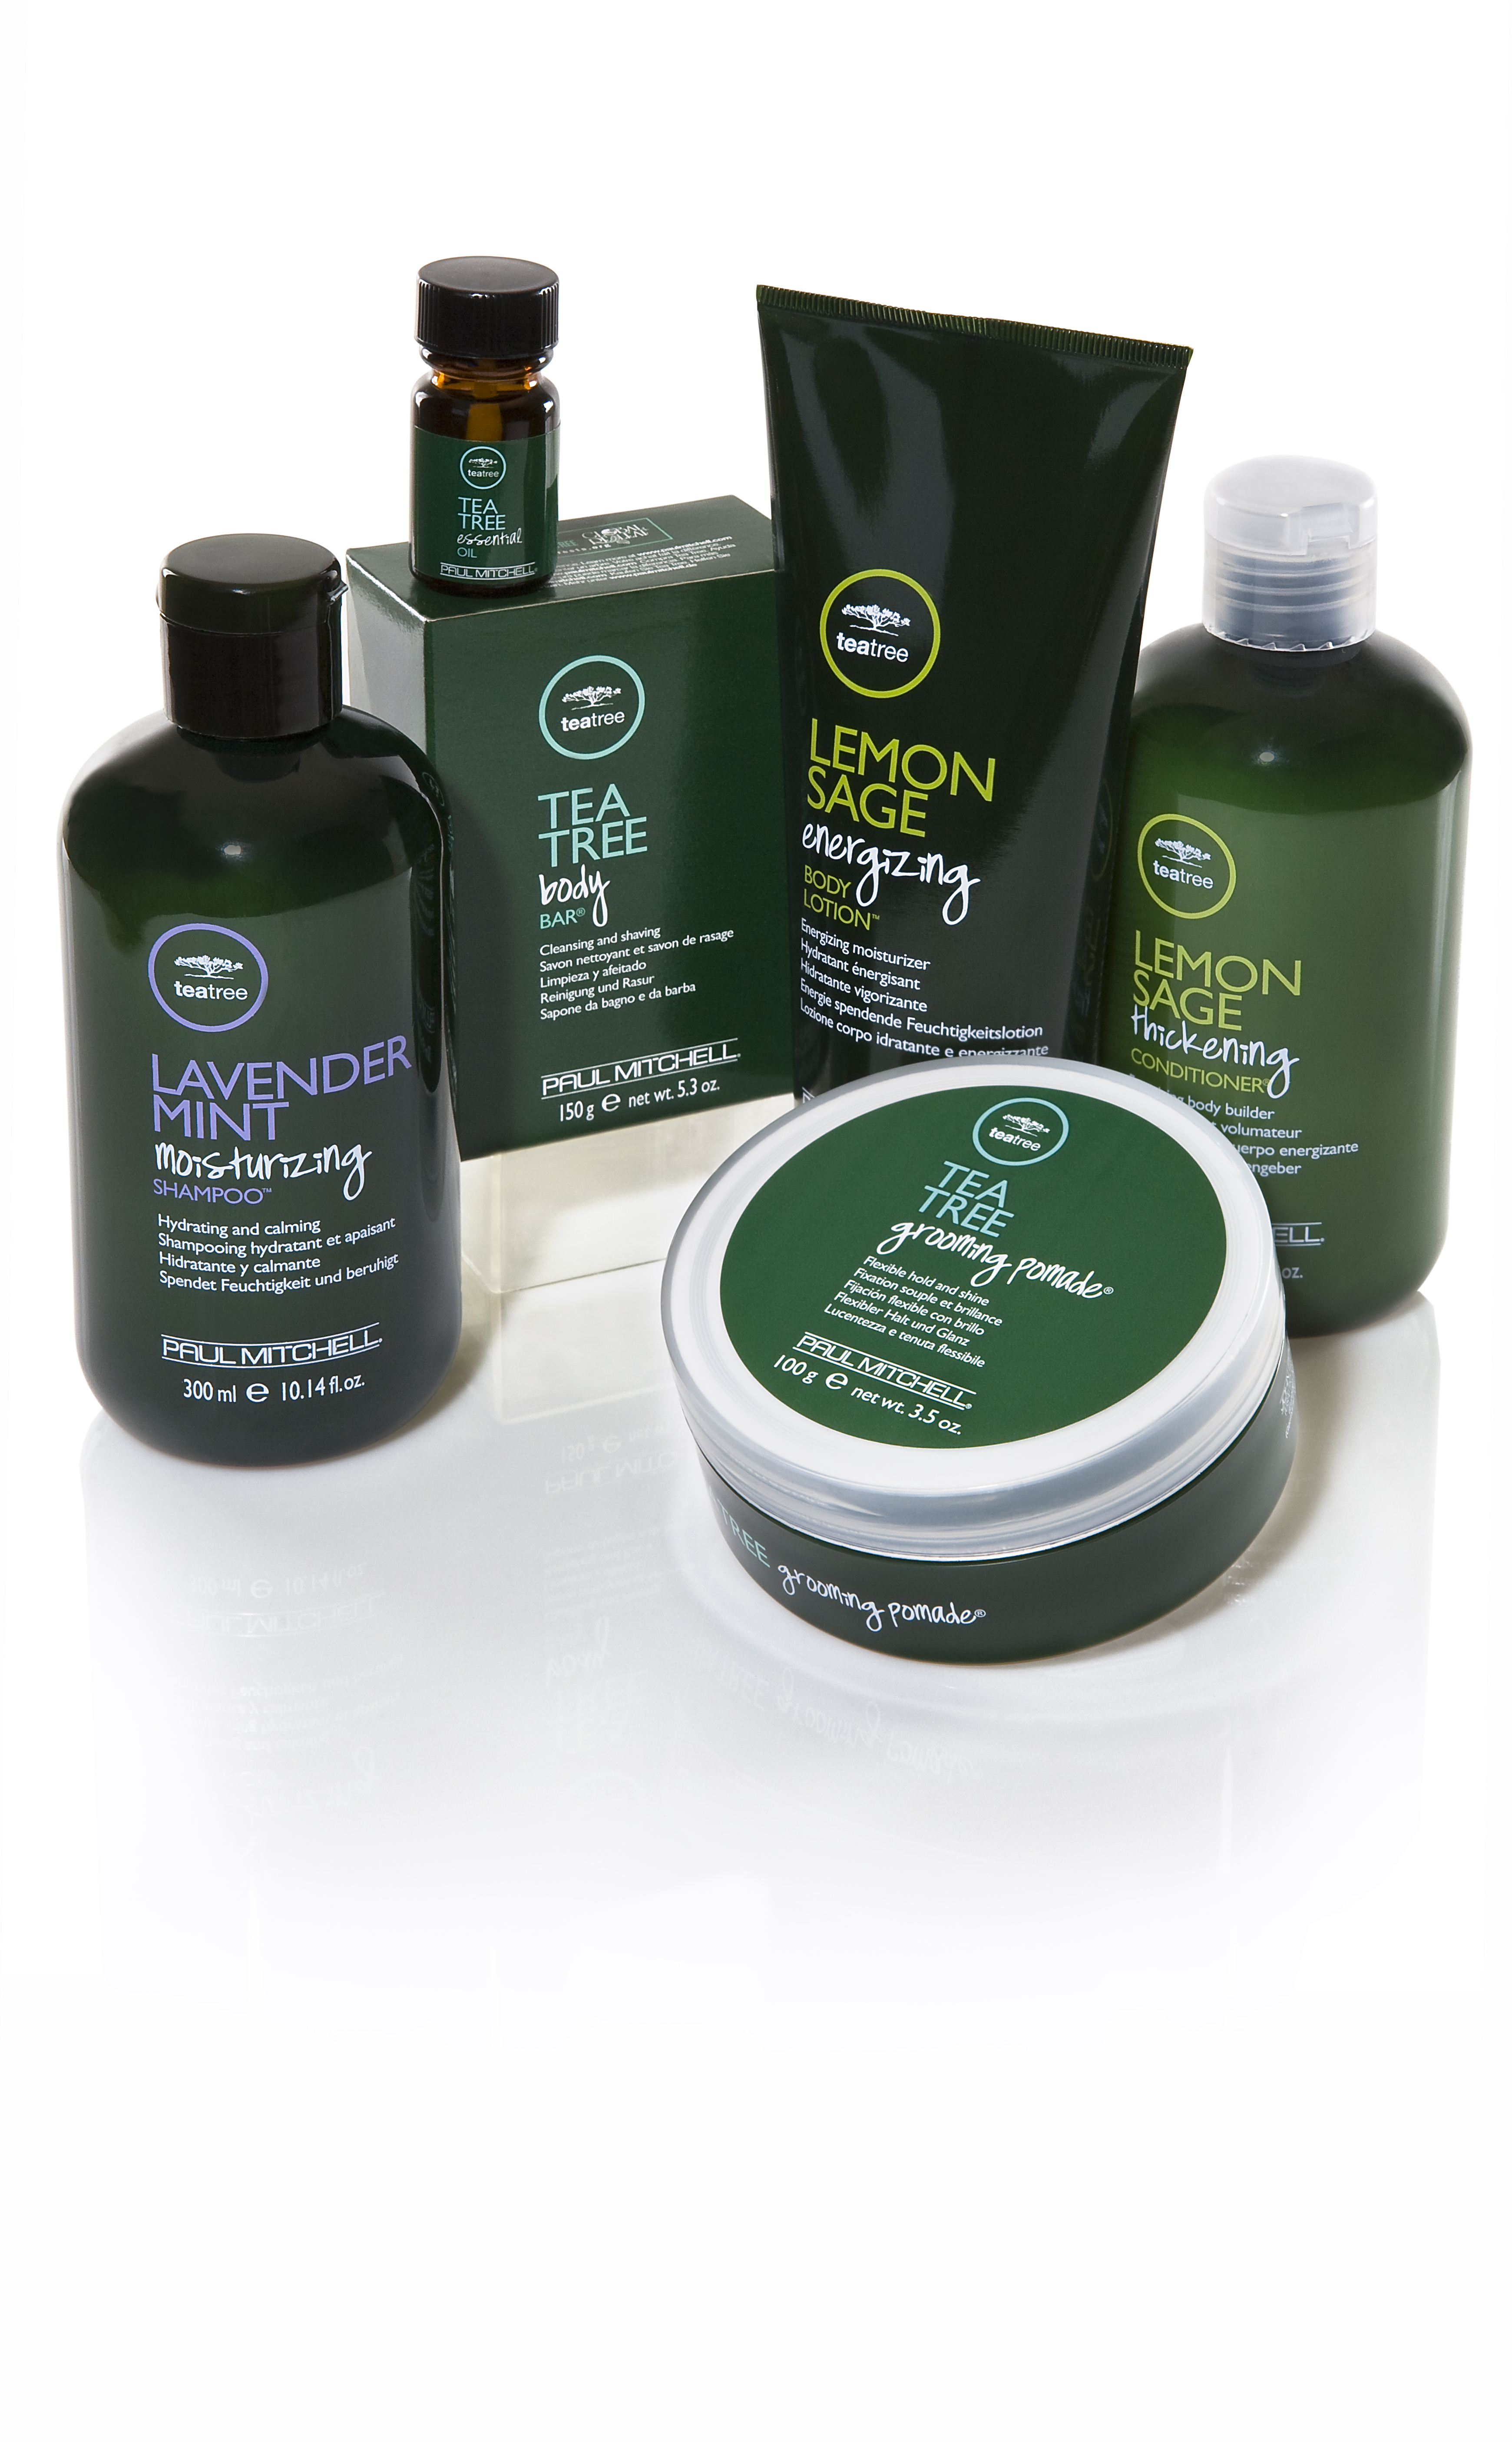 Paul Mitchell's Tea Tree line